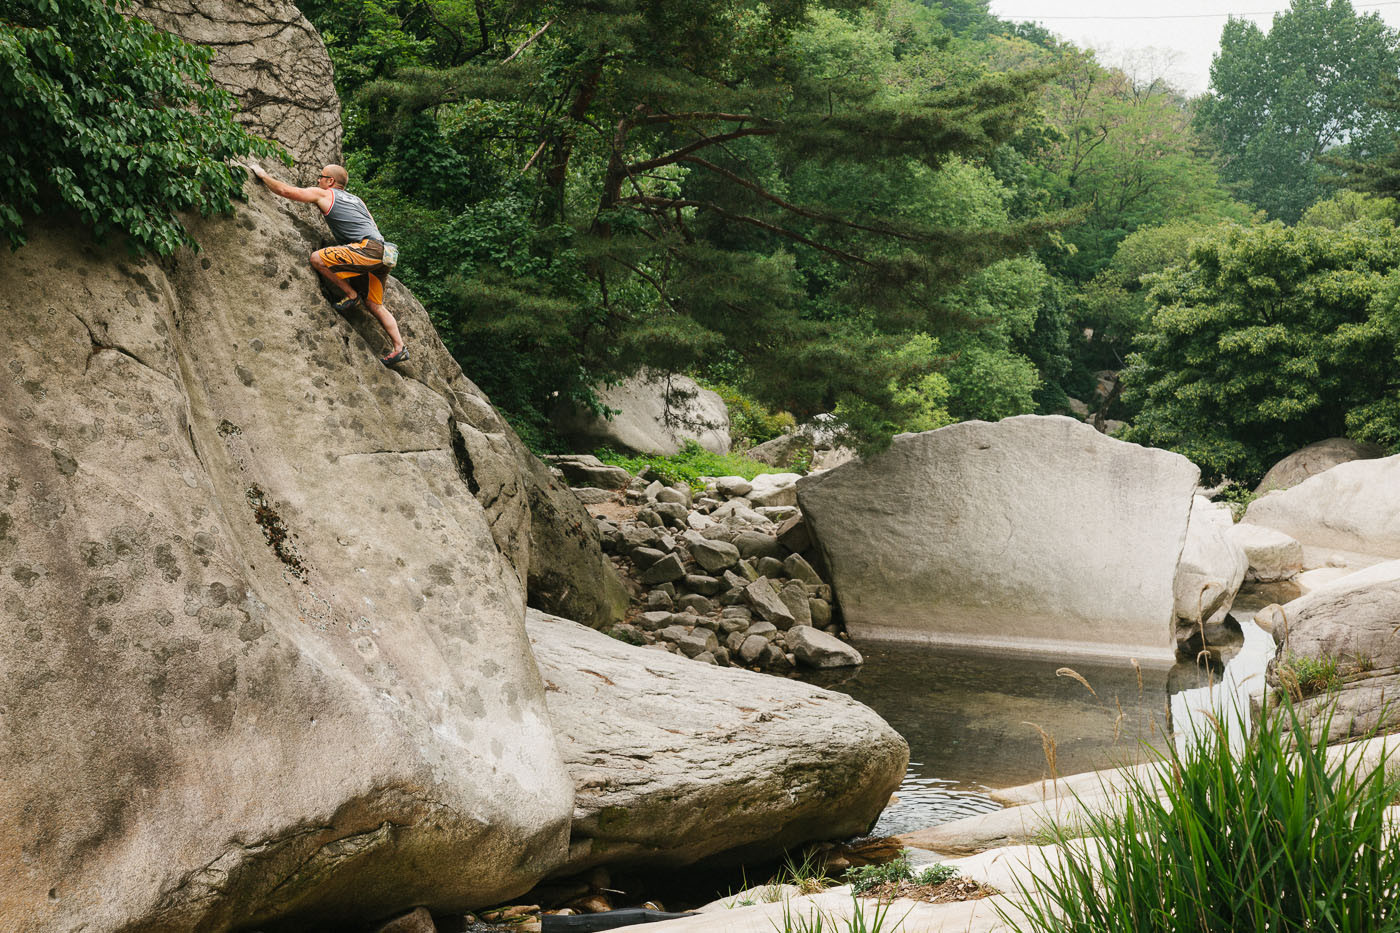 Dave McAllister climbs Vertical Twister at the Riverbeds in Bukansan National Park, South Korea